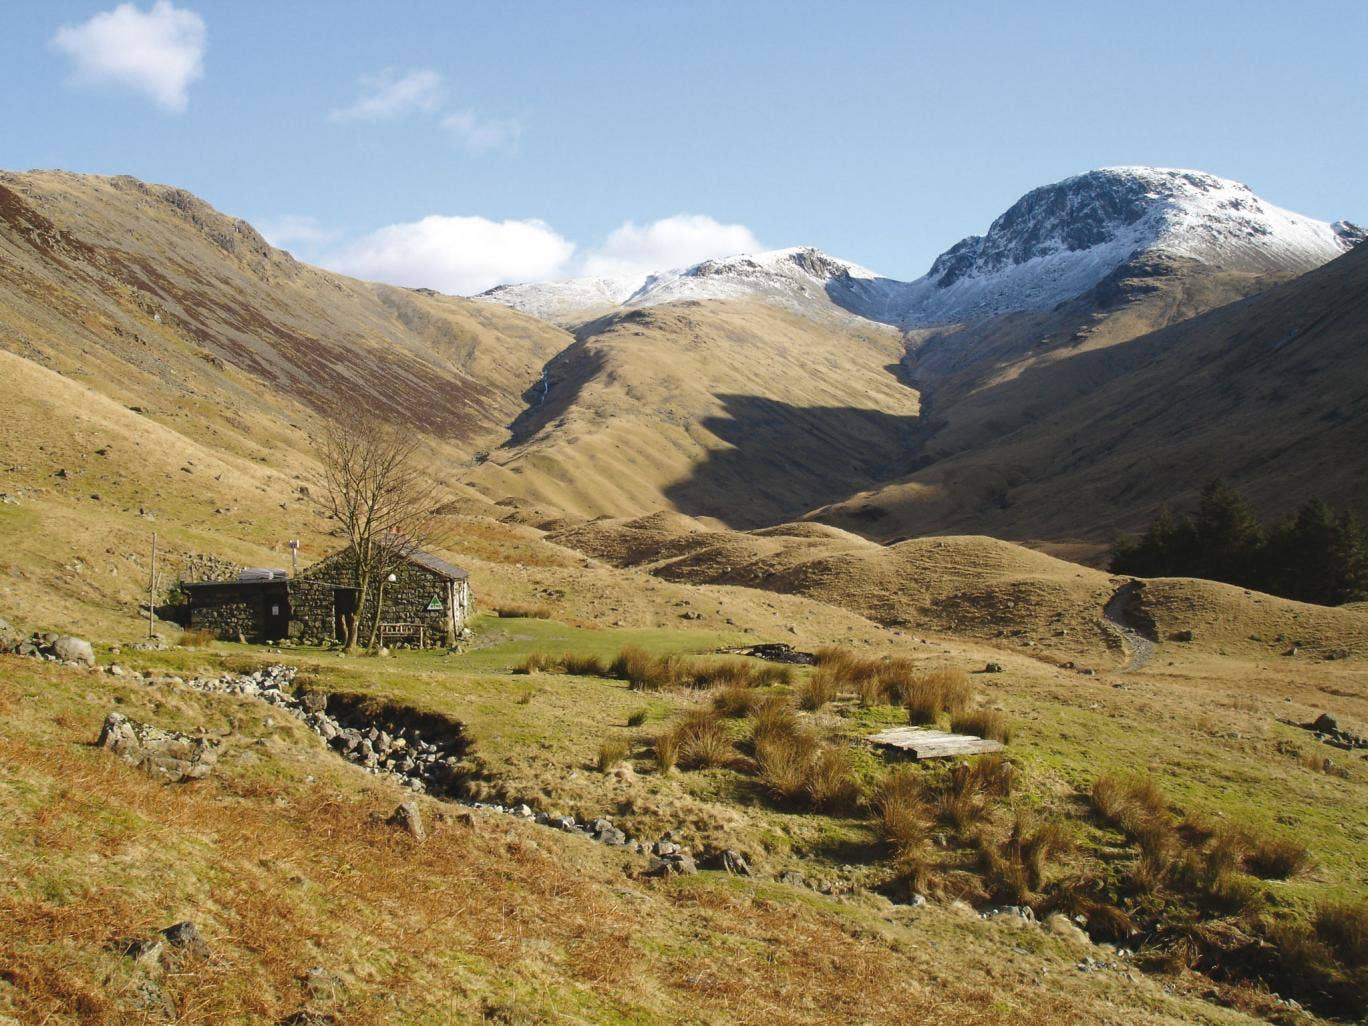 Ennerdale in the Lake District, one potential site for underground nuclear waste